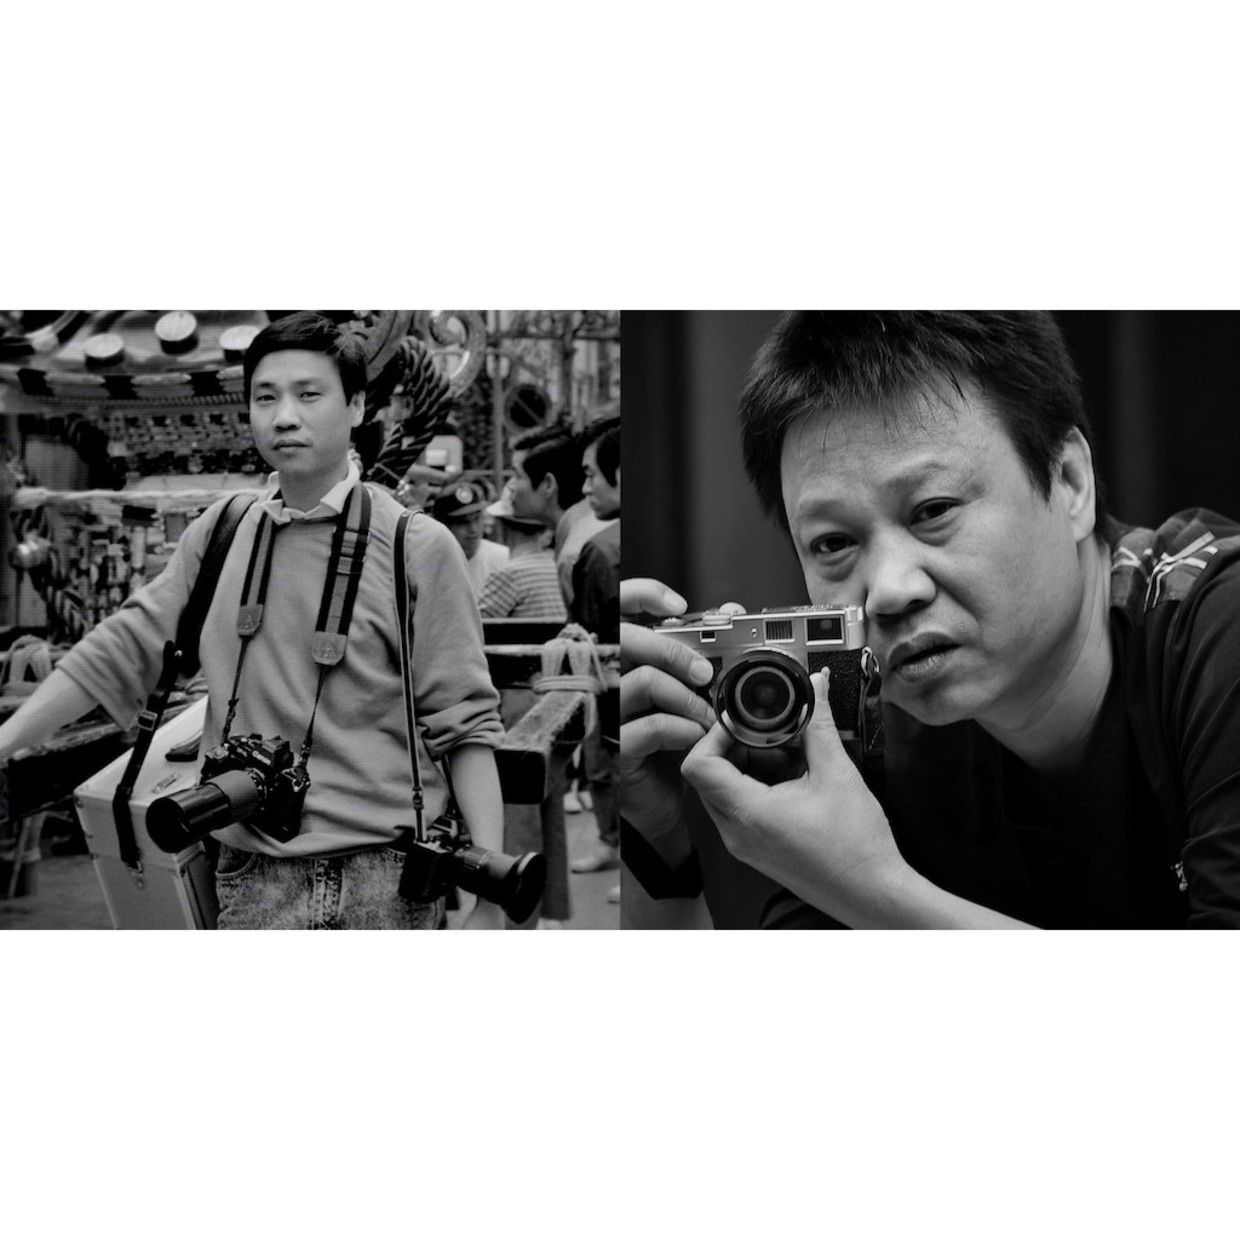 ZHOU YUEDONG Born 1960, Fujian province. Lives and works in Fuzhou. Zhou Yuedong started out in photography in 1980s, taking...